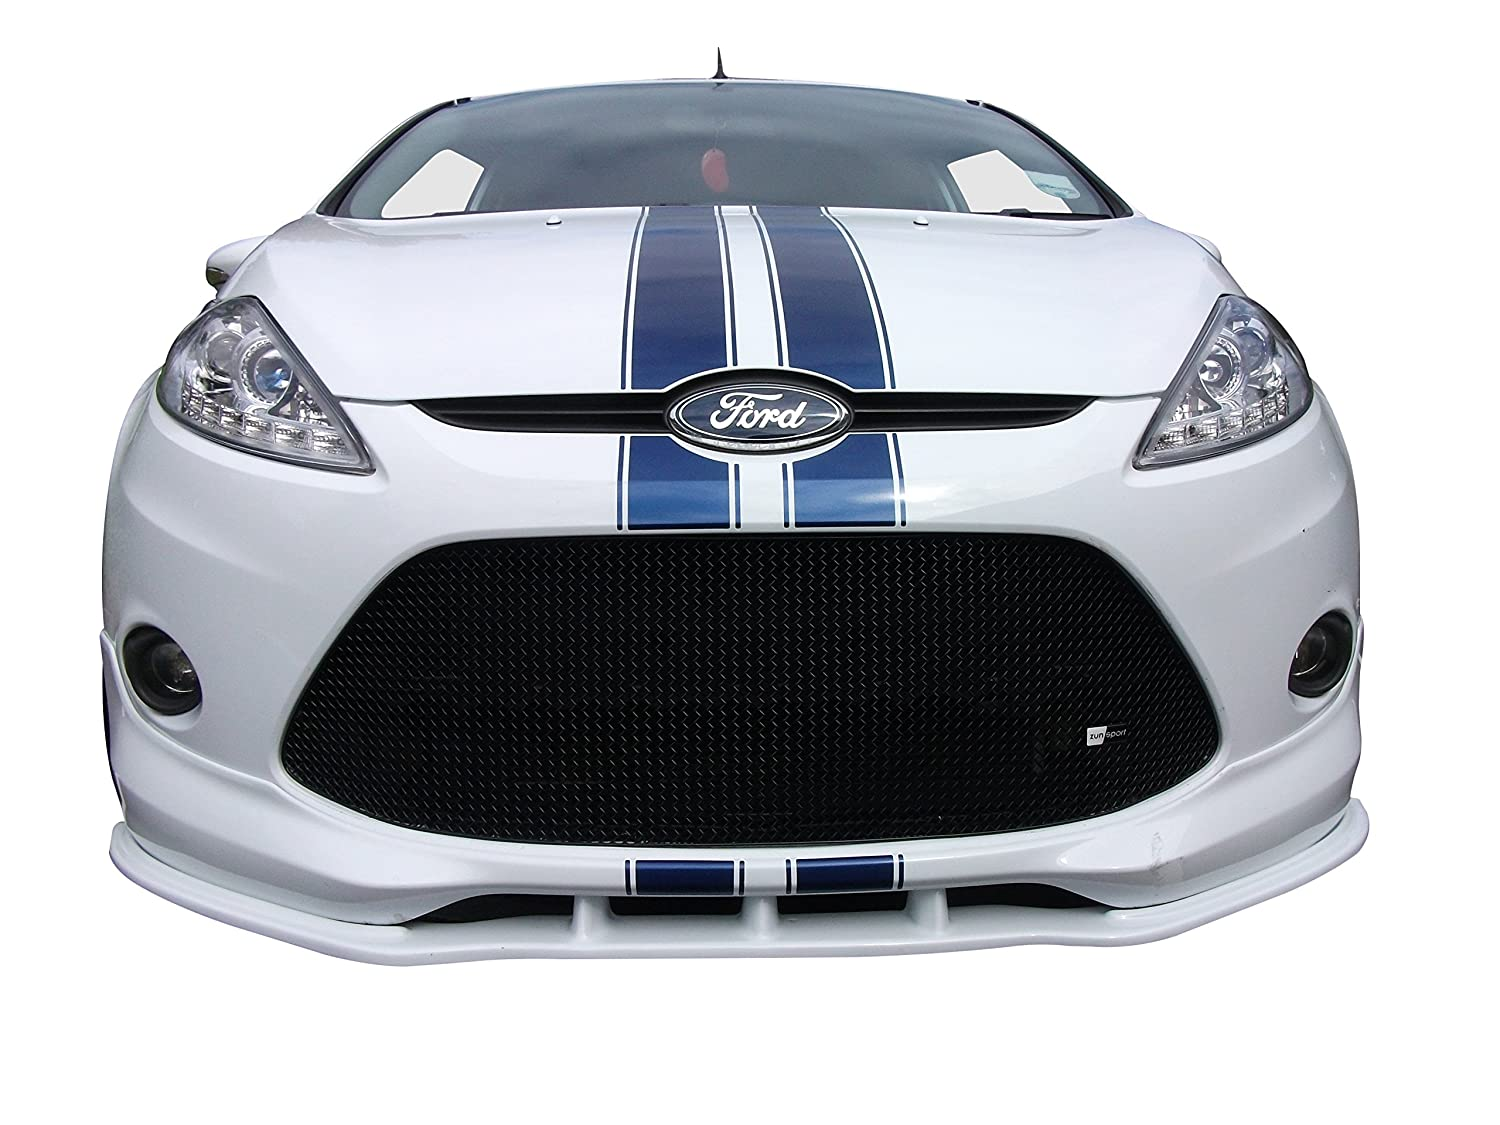 2009 to 2012 without Number Plate - Black finish Front Lower Grille